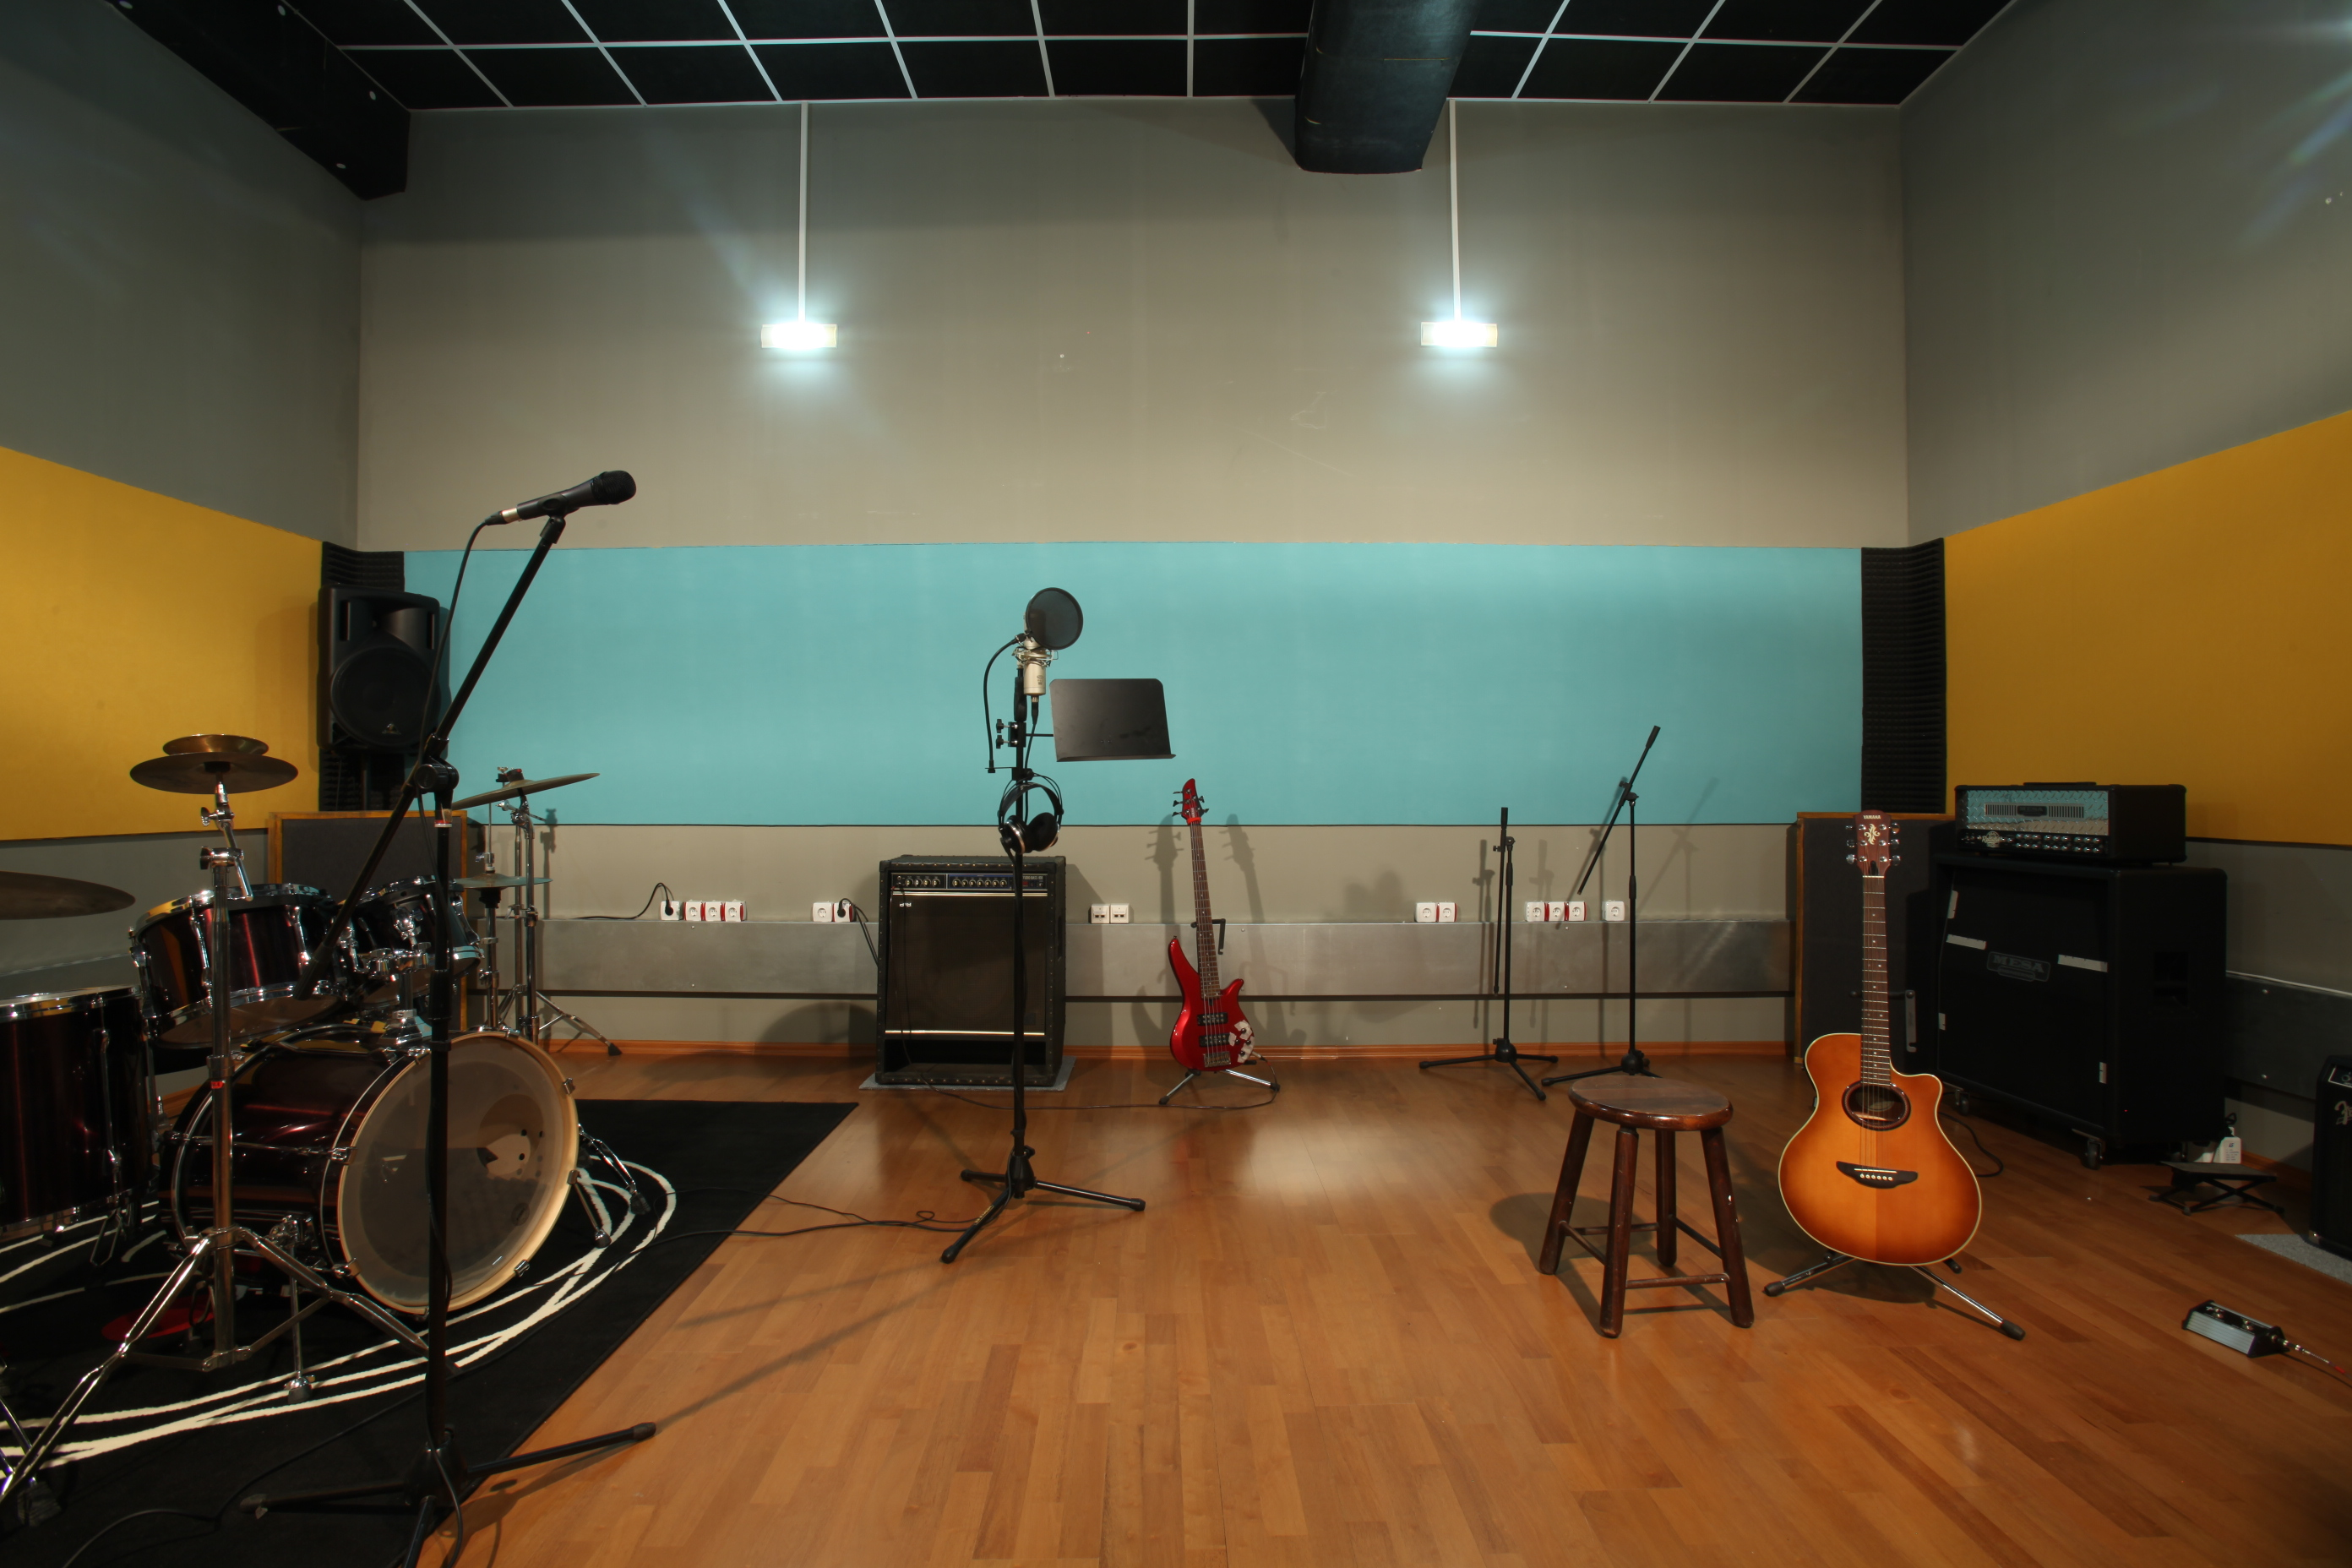 Pacific studio recording and rehearsal studio in sofia for Yamaha hs80m specs